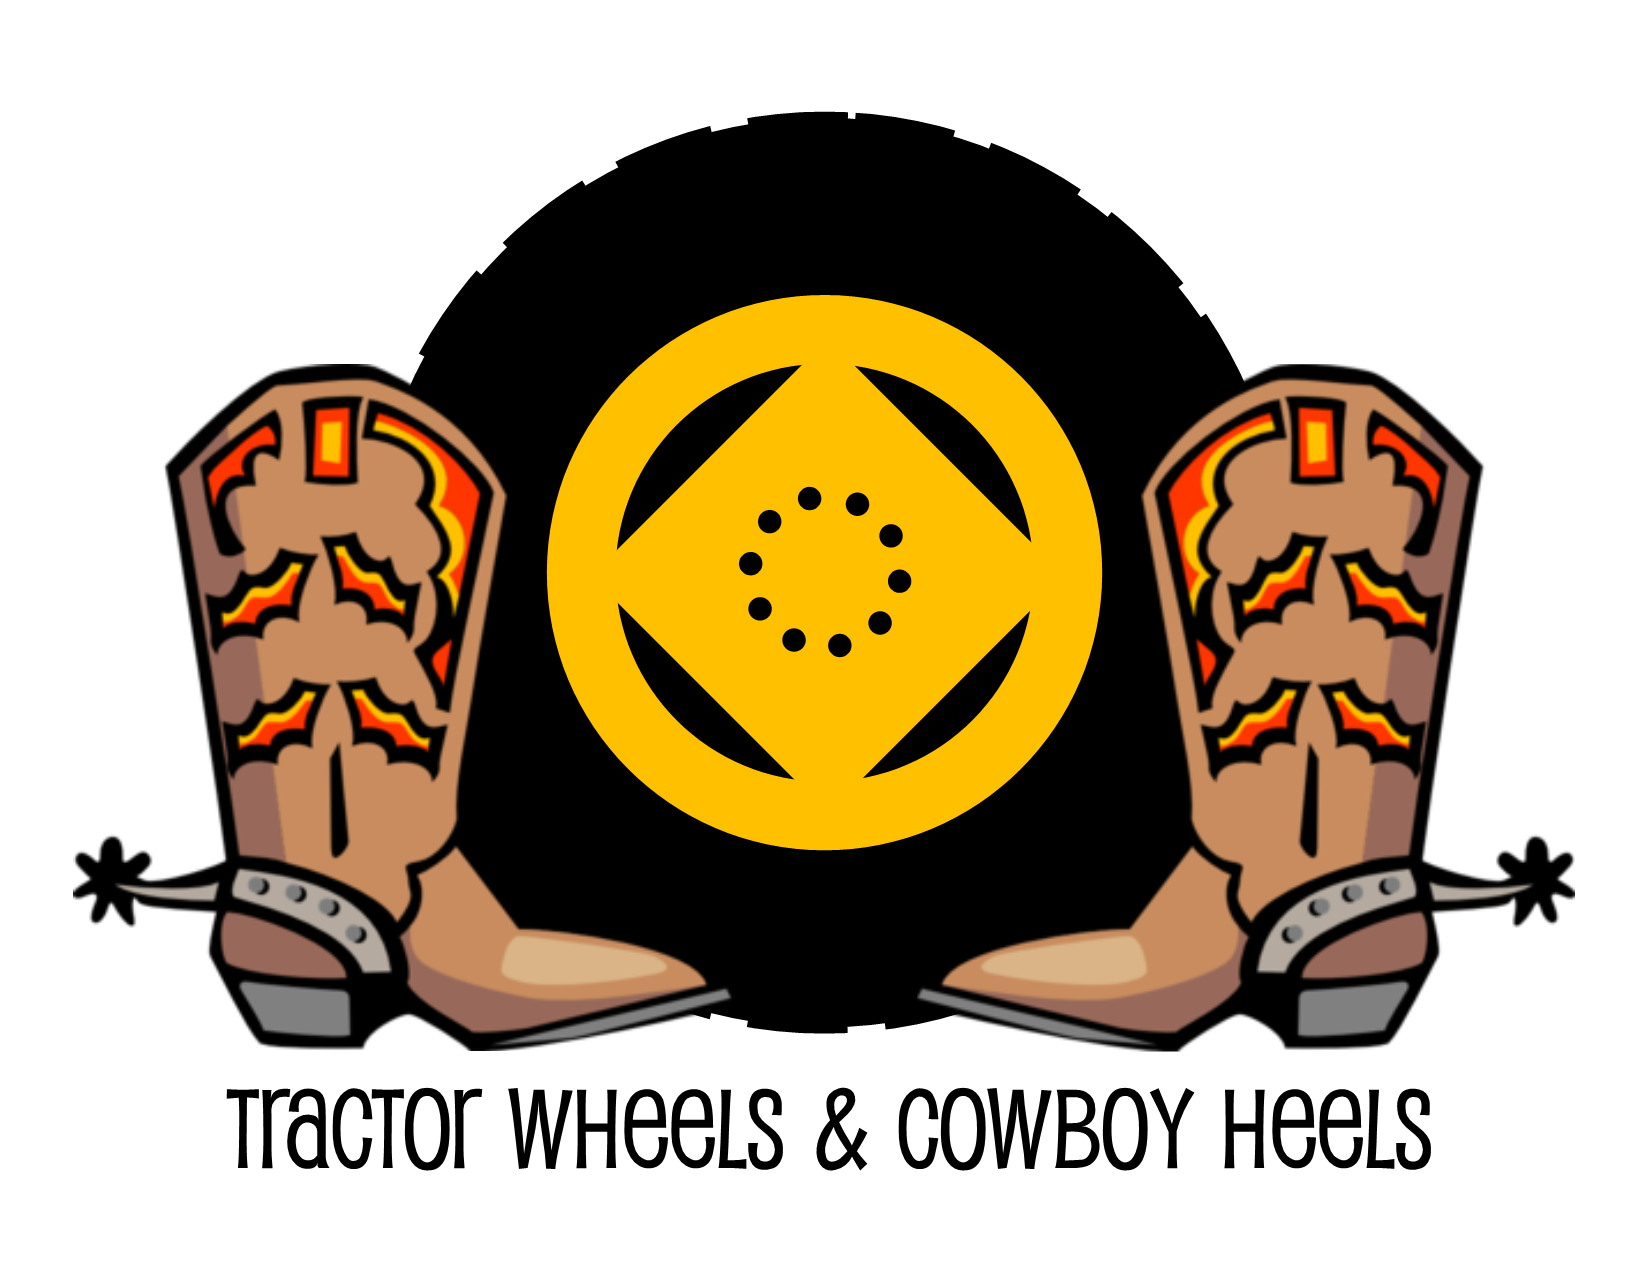 theme of fair: Tractor Wheels and Cowboy Heels